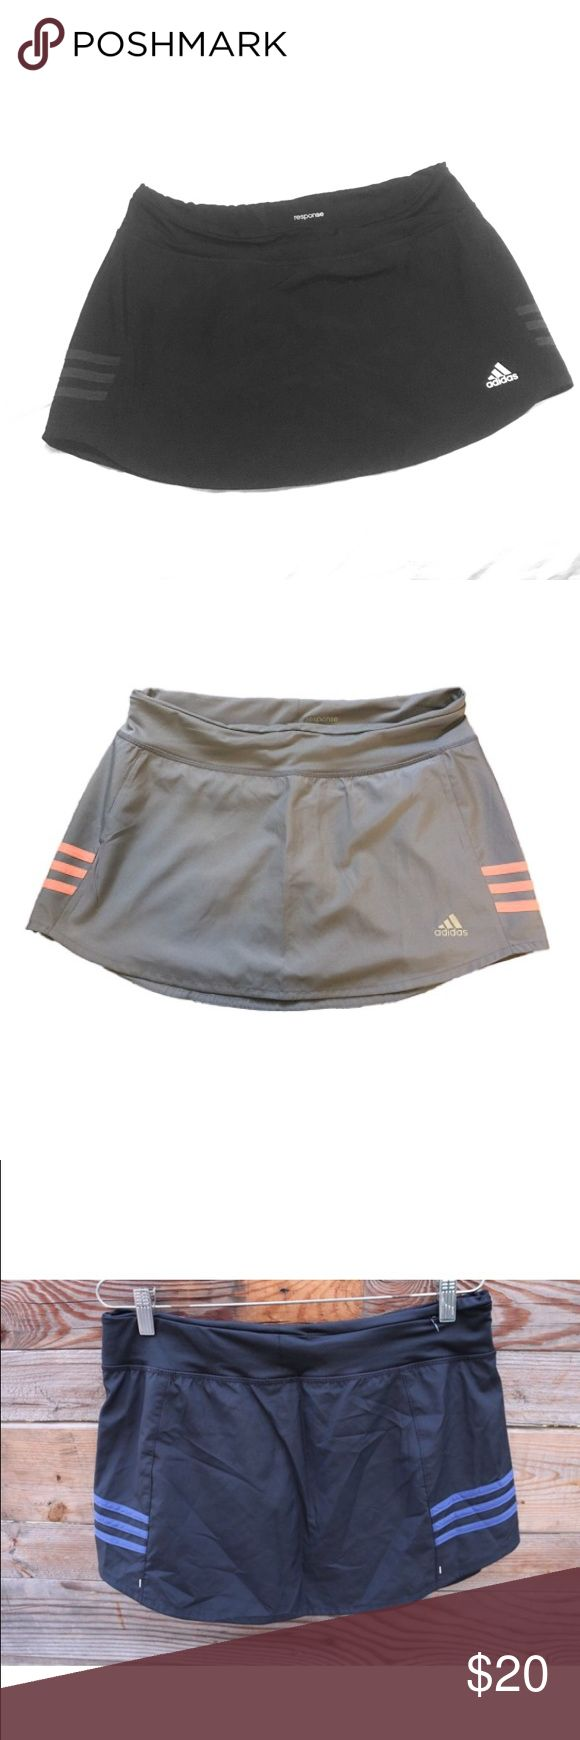 Adidas Response Tennis Fitness Skort NWOT. Purchased the wrong size. Stretchy shorts underneath. Black with dark blue (navy) stripes on side. Adidas Shorts Skorts